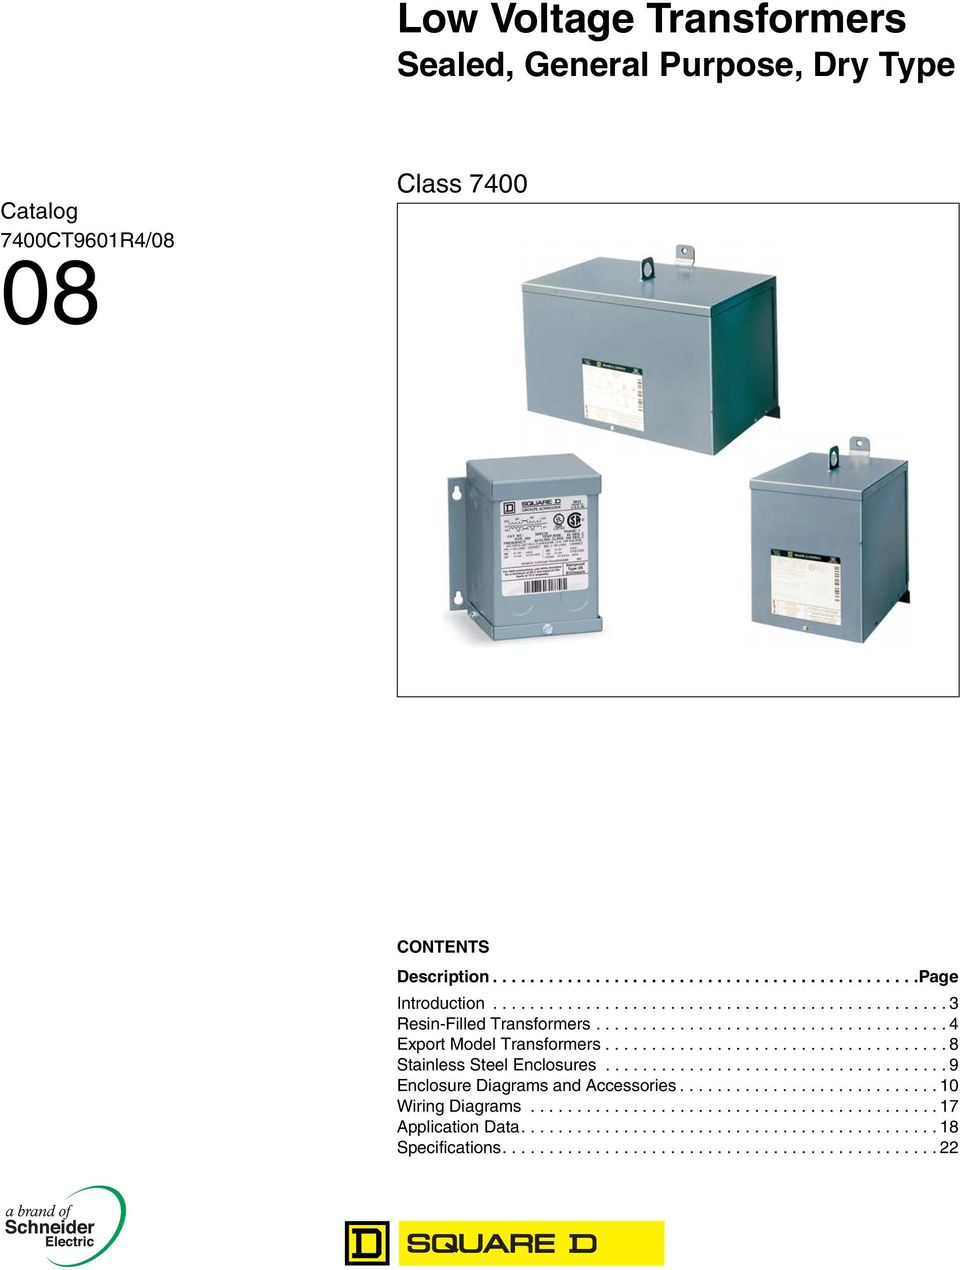 hight resolution of low voltage transformers sealed general purpose dry type pdf isolation transformer wiring diagram schneider electric transformer wiring diagram